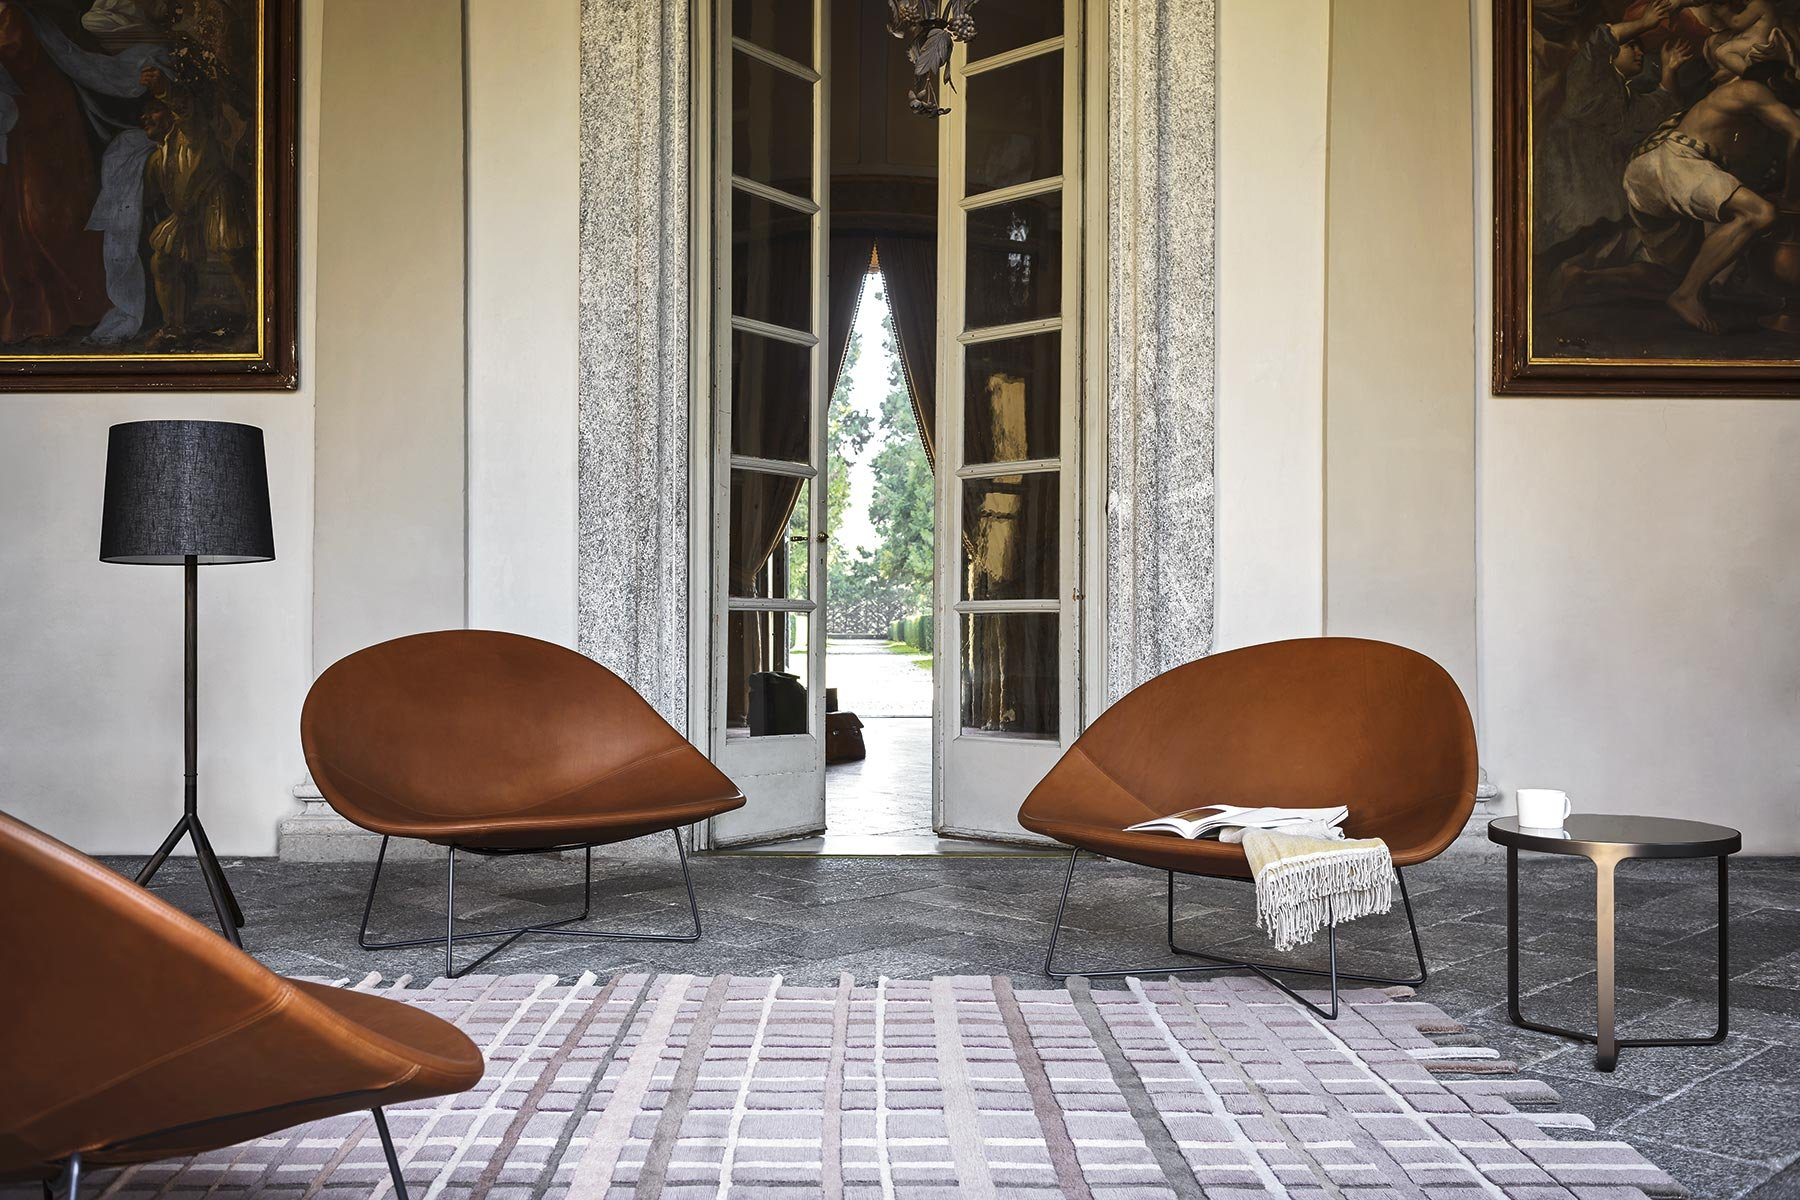 Isola Armchair lounge from Tacchini, designed by Claesson Koivisto Rune